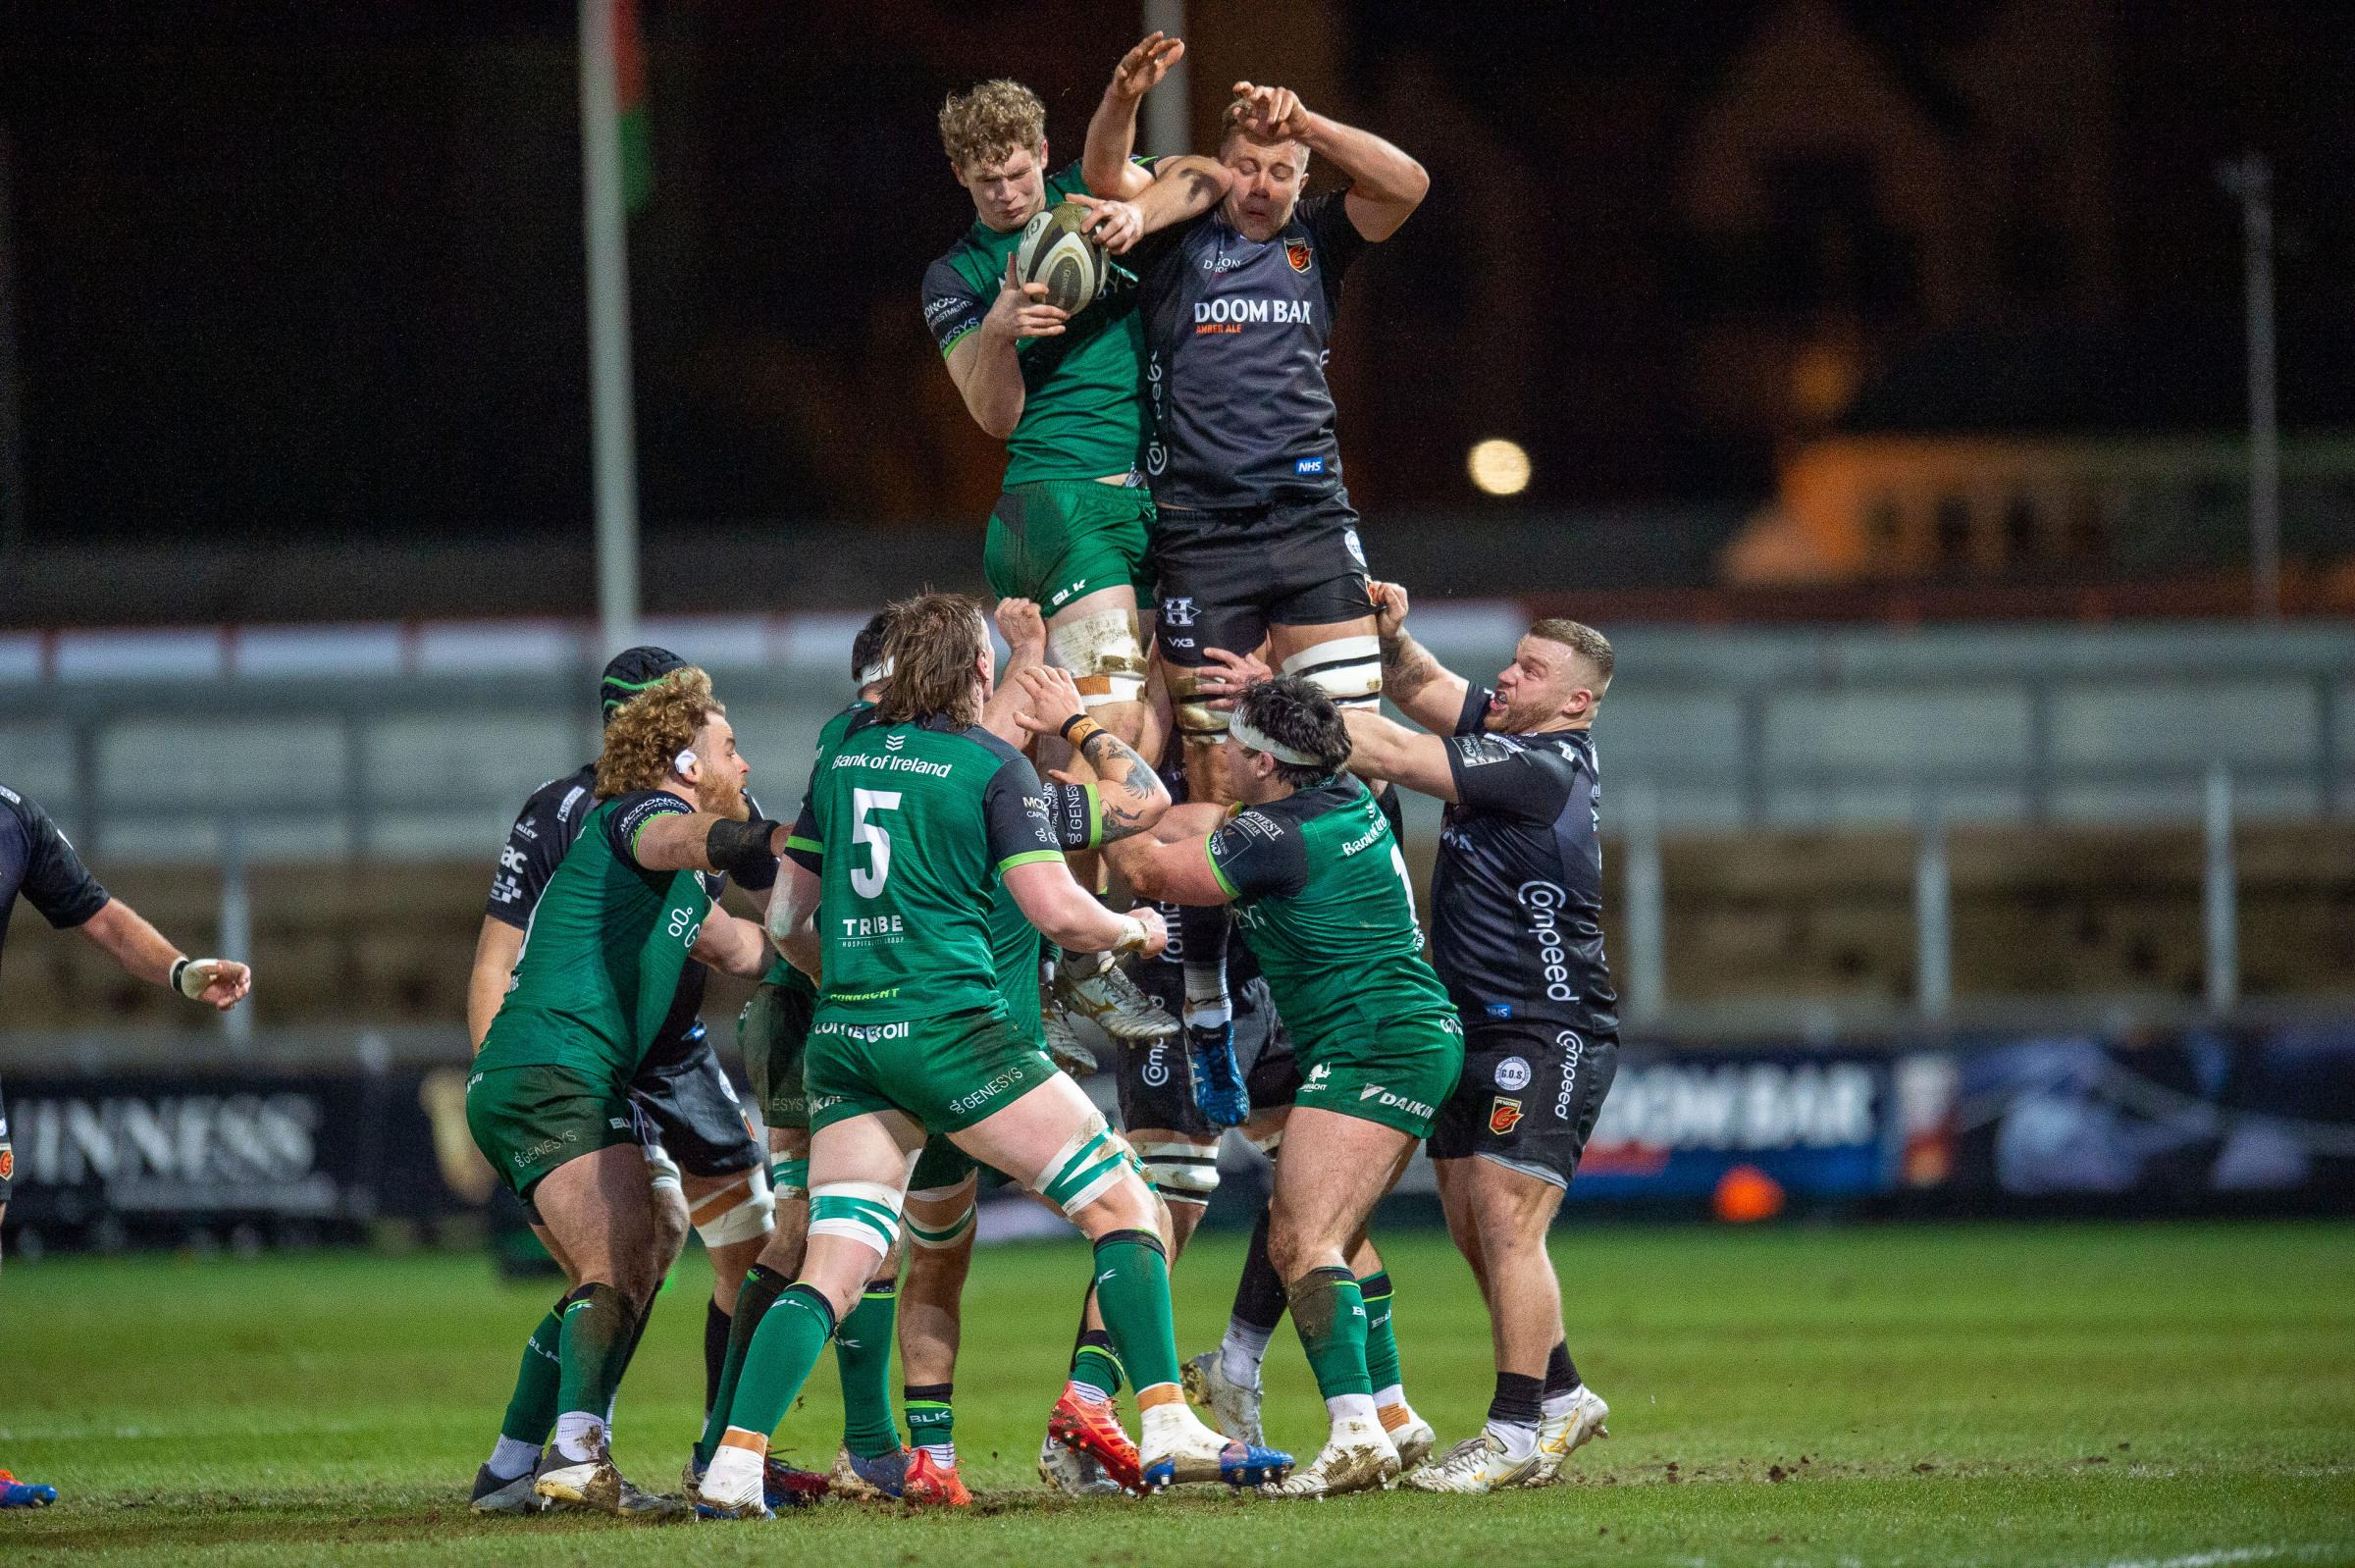 Dragons lock Ben Carter tries to disrupt the Connacht lineout